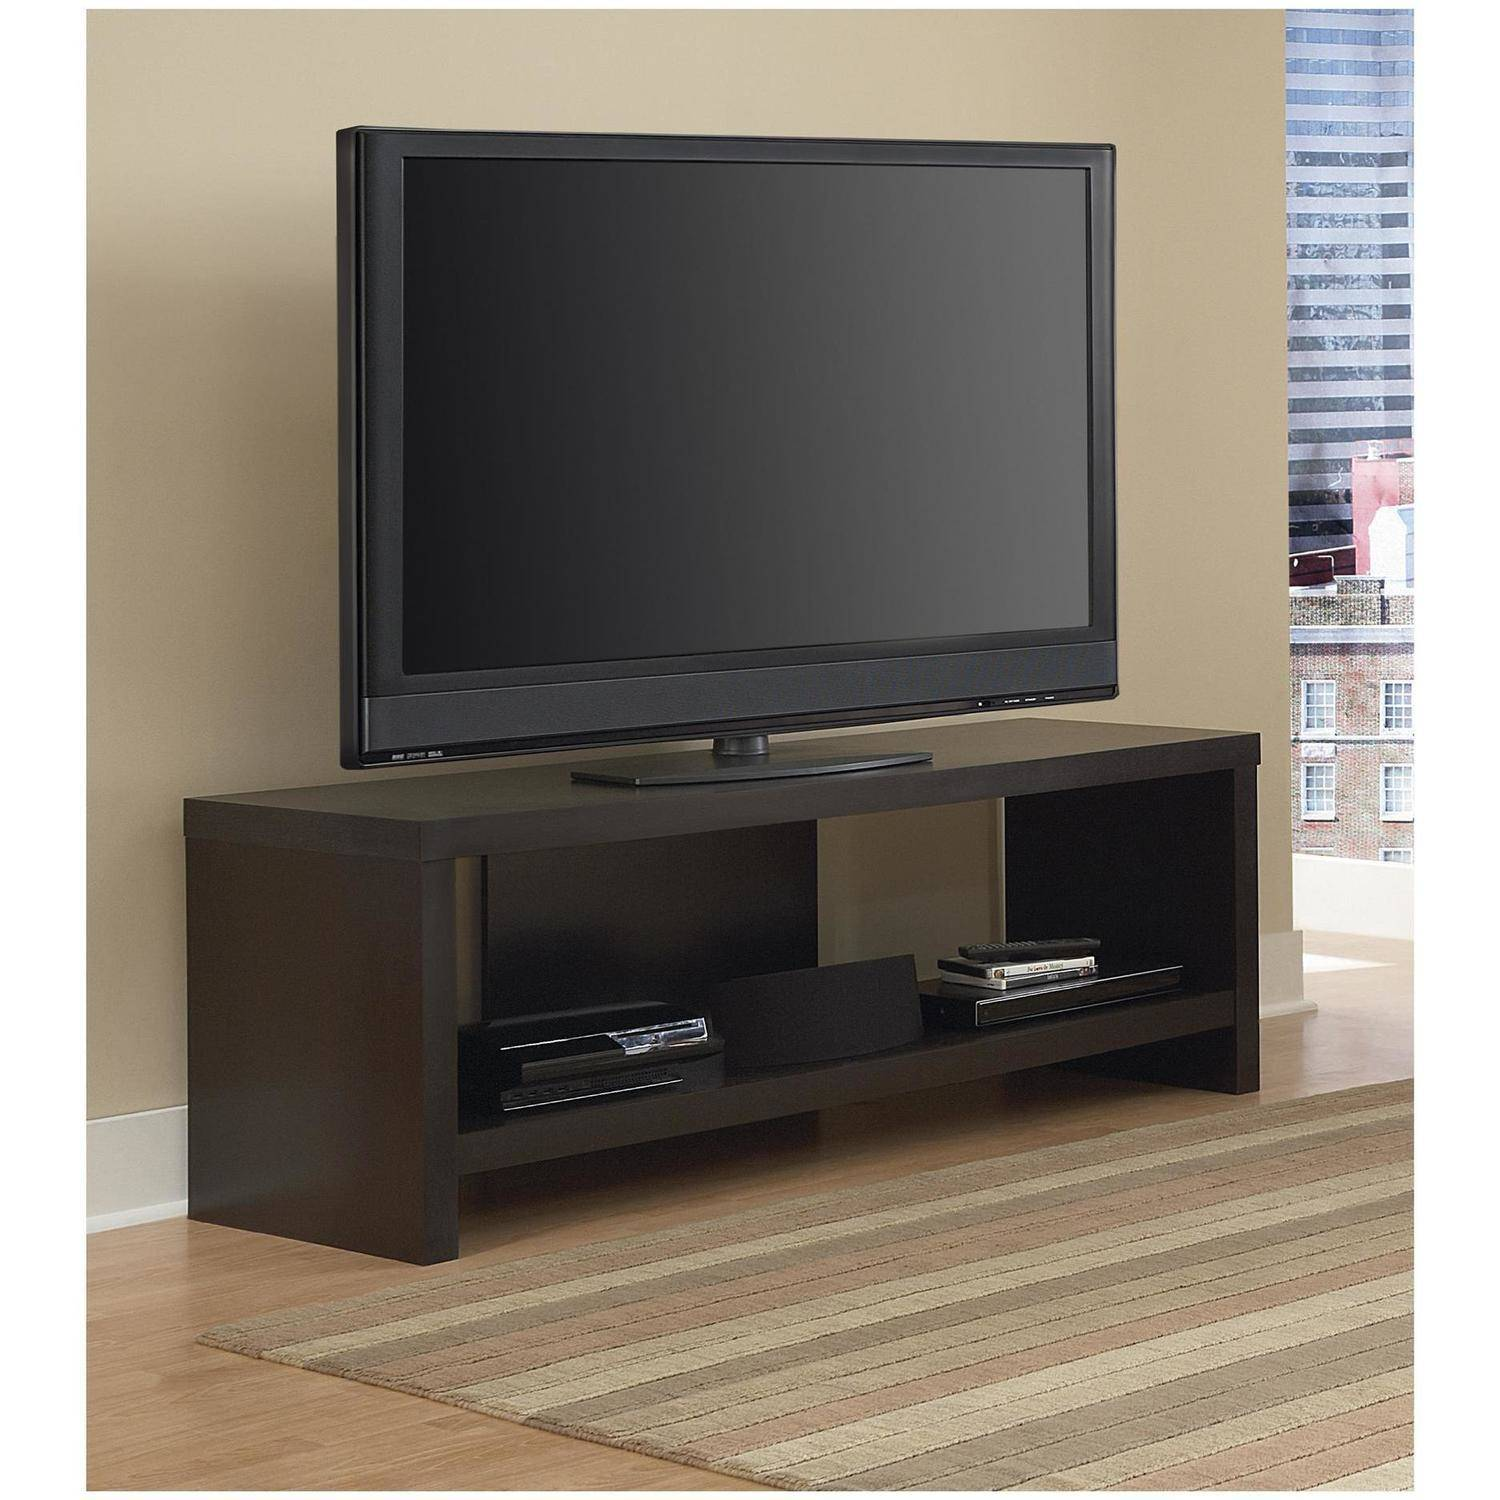 "Larkin TV Stand for TVs up to 60"" by Ameriwood, Multiple Finishes"